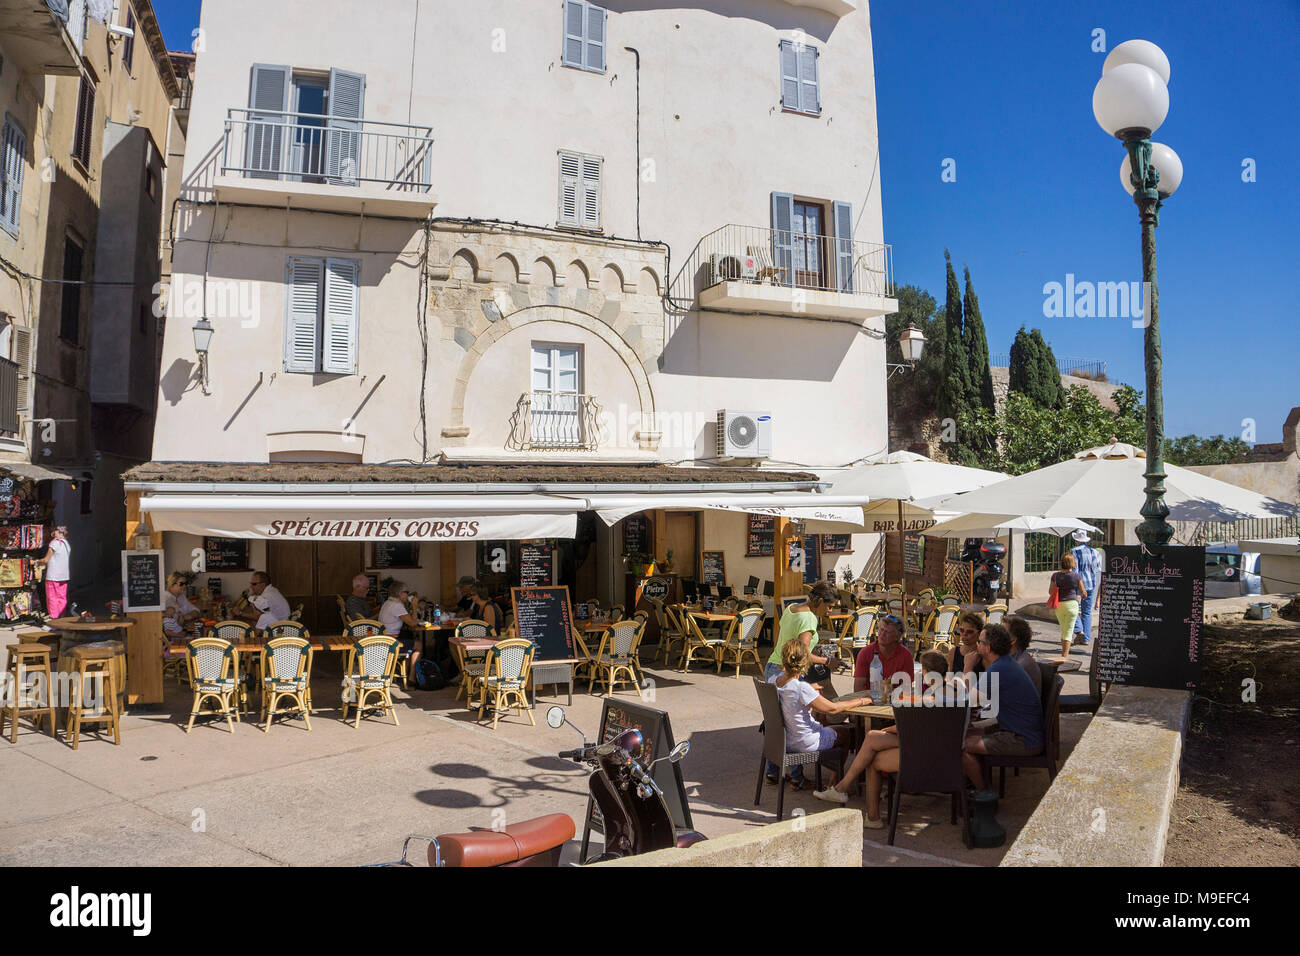 Restaurant at upper town, old town of Bonifacio, Corsica, France, Mediterranean, Europe - Stock Image